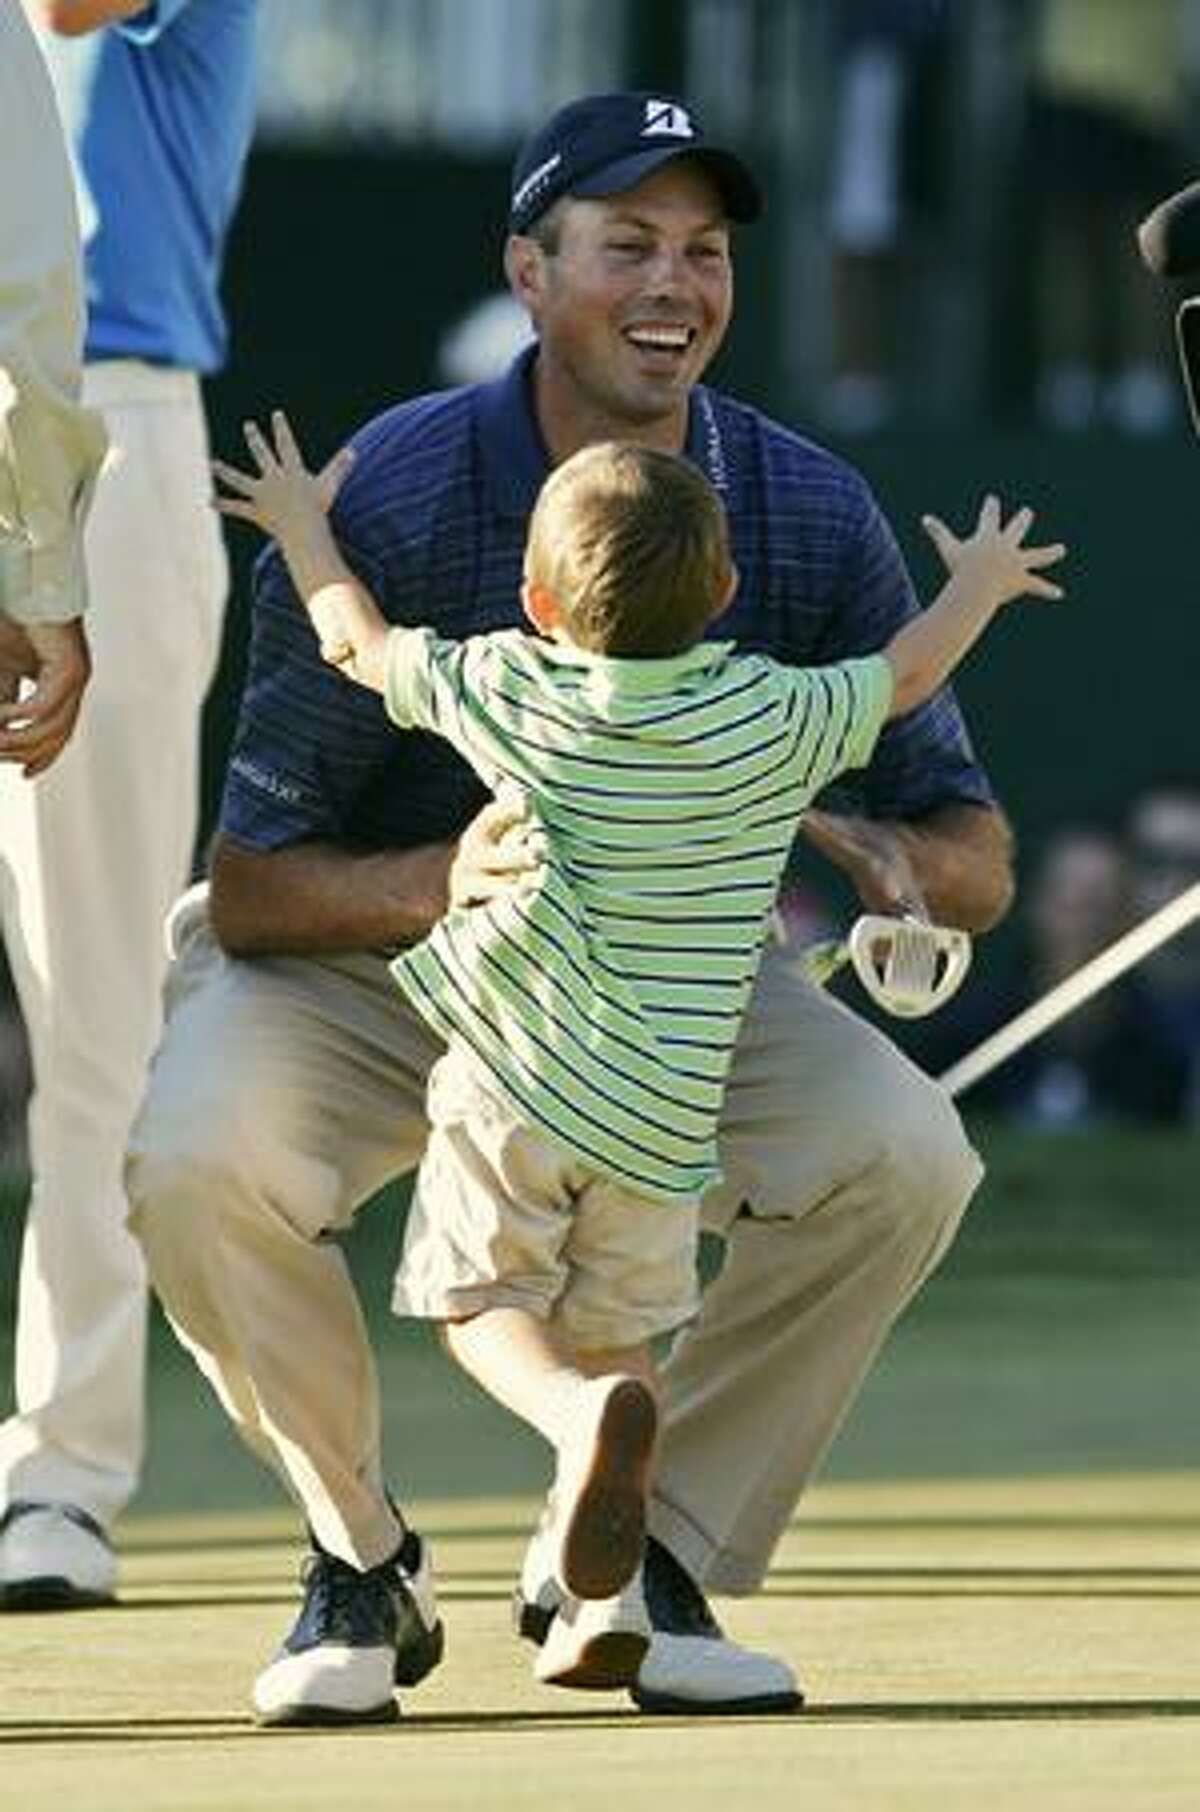 AP Cameron Kuchar, 2, runs into his arms of his father, Matt Kuchar, after Kuchar beat Martin Laird of Scotland in a sudden death playoff at The Barclays golf tournament, Sunday, in Paramus, N.J. Kuchar won with a score of 12-under par.